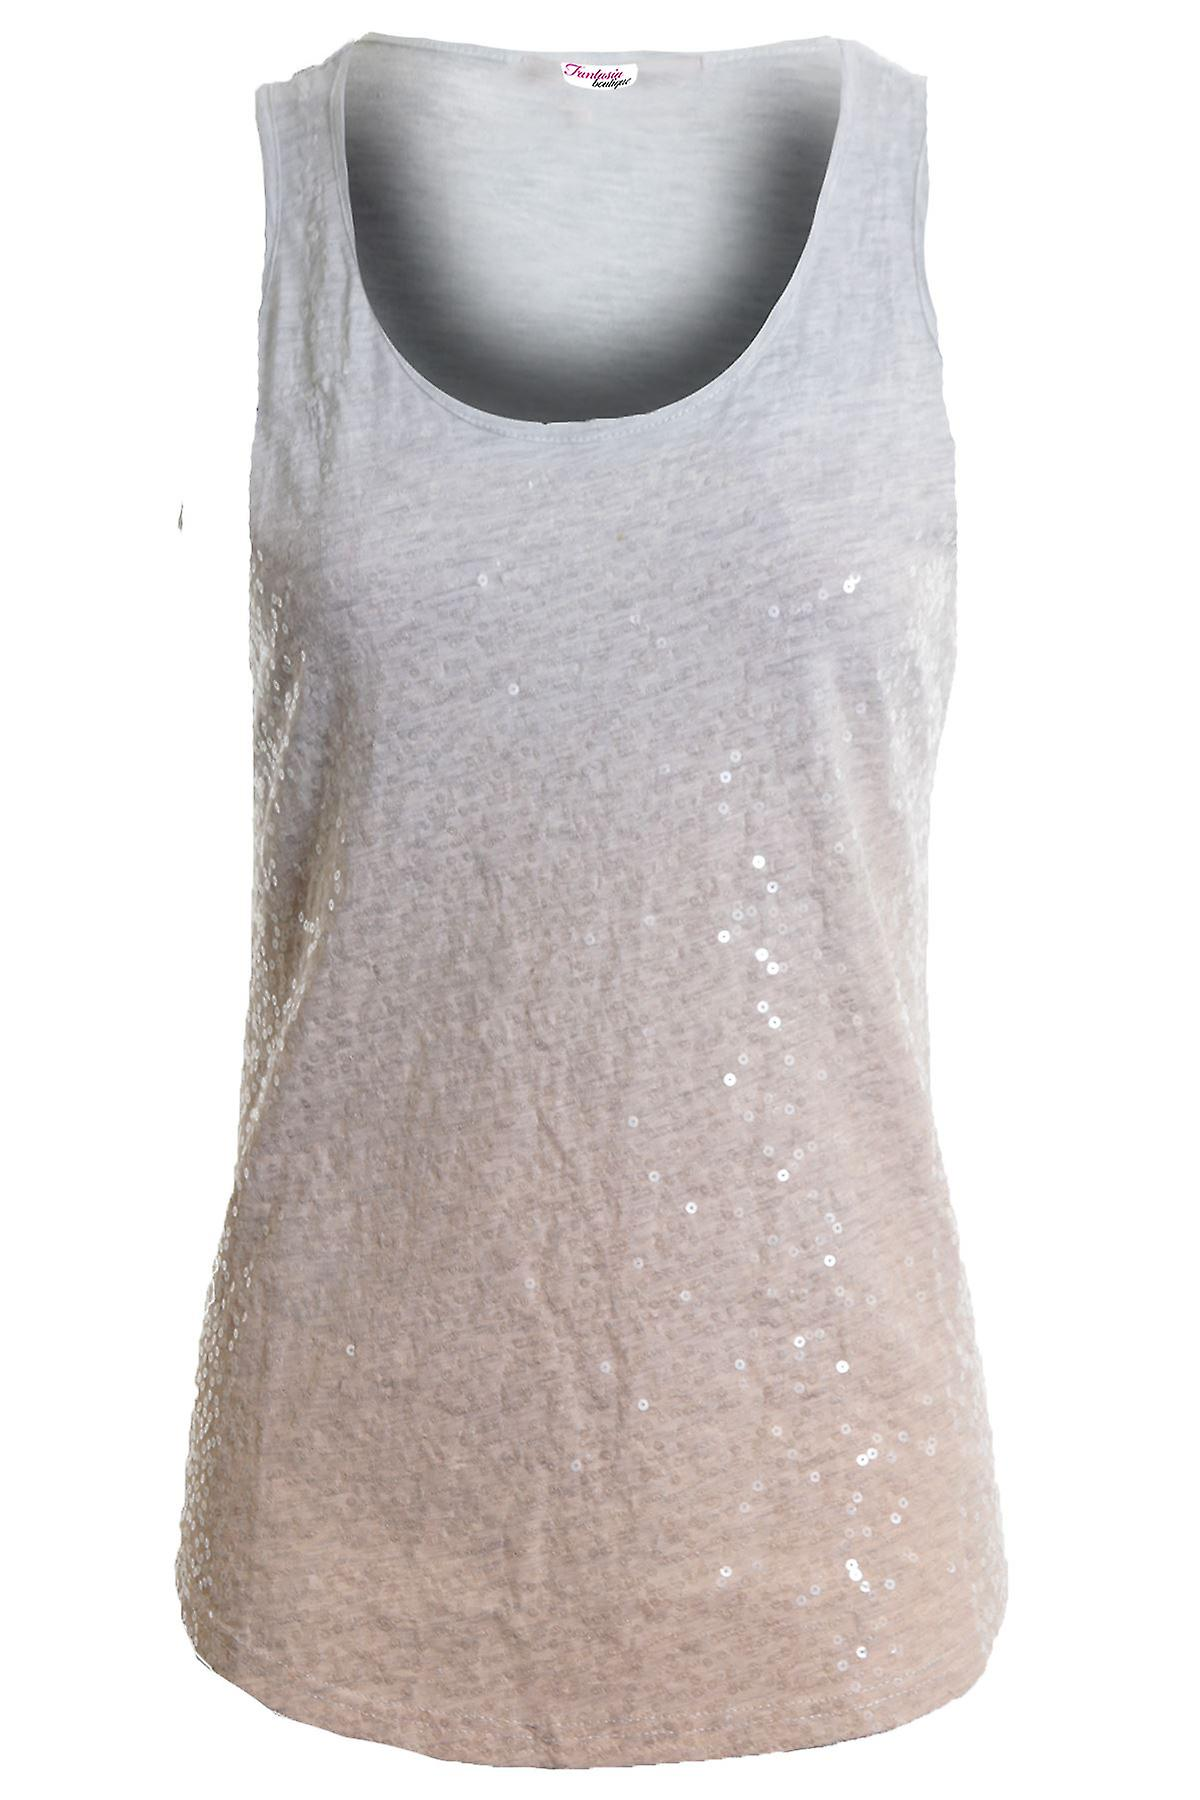 Ladies Sleeveless Faded Tie-Dye Sequin Top Fitted Women's Vest